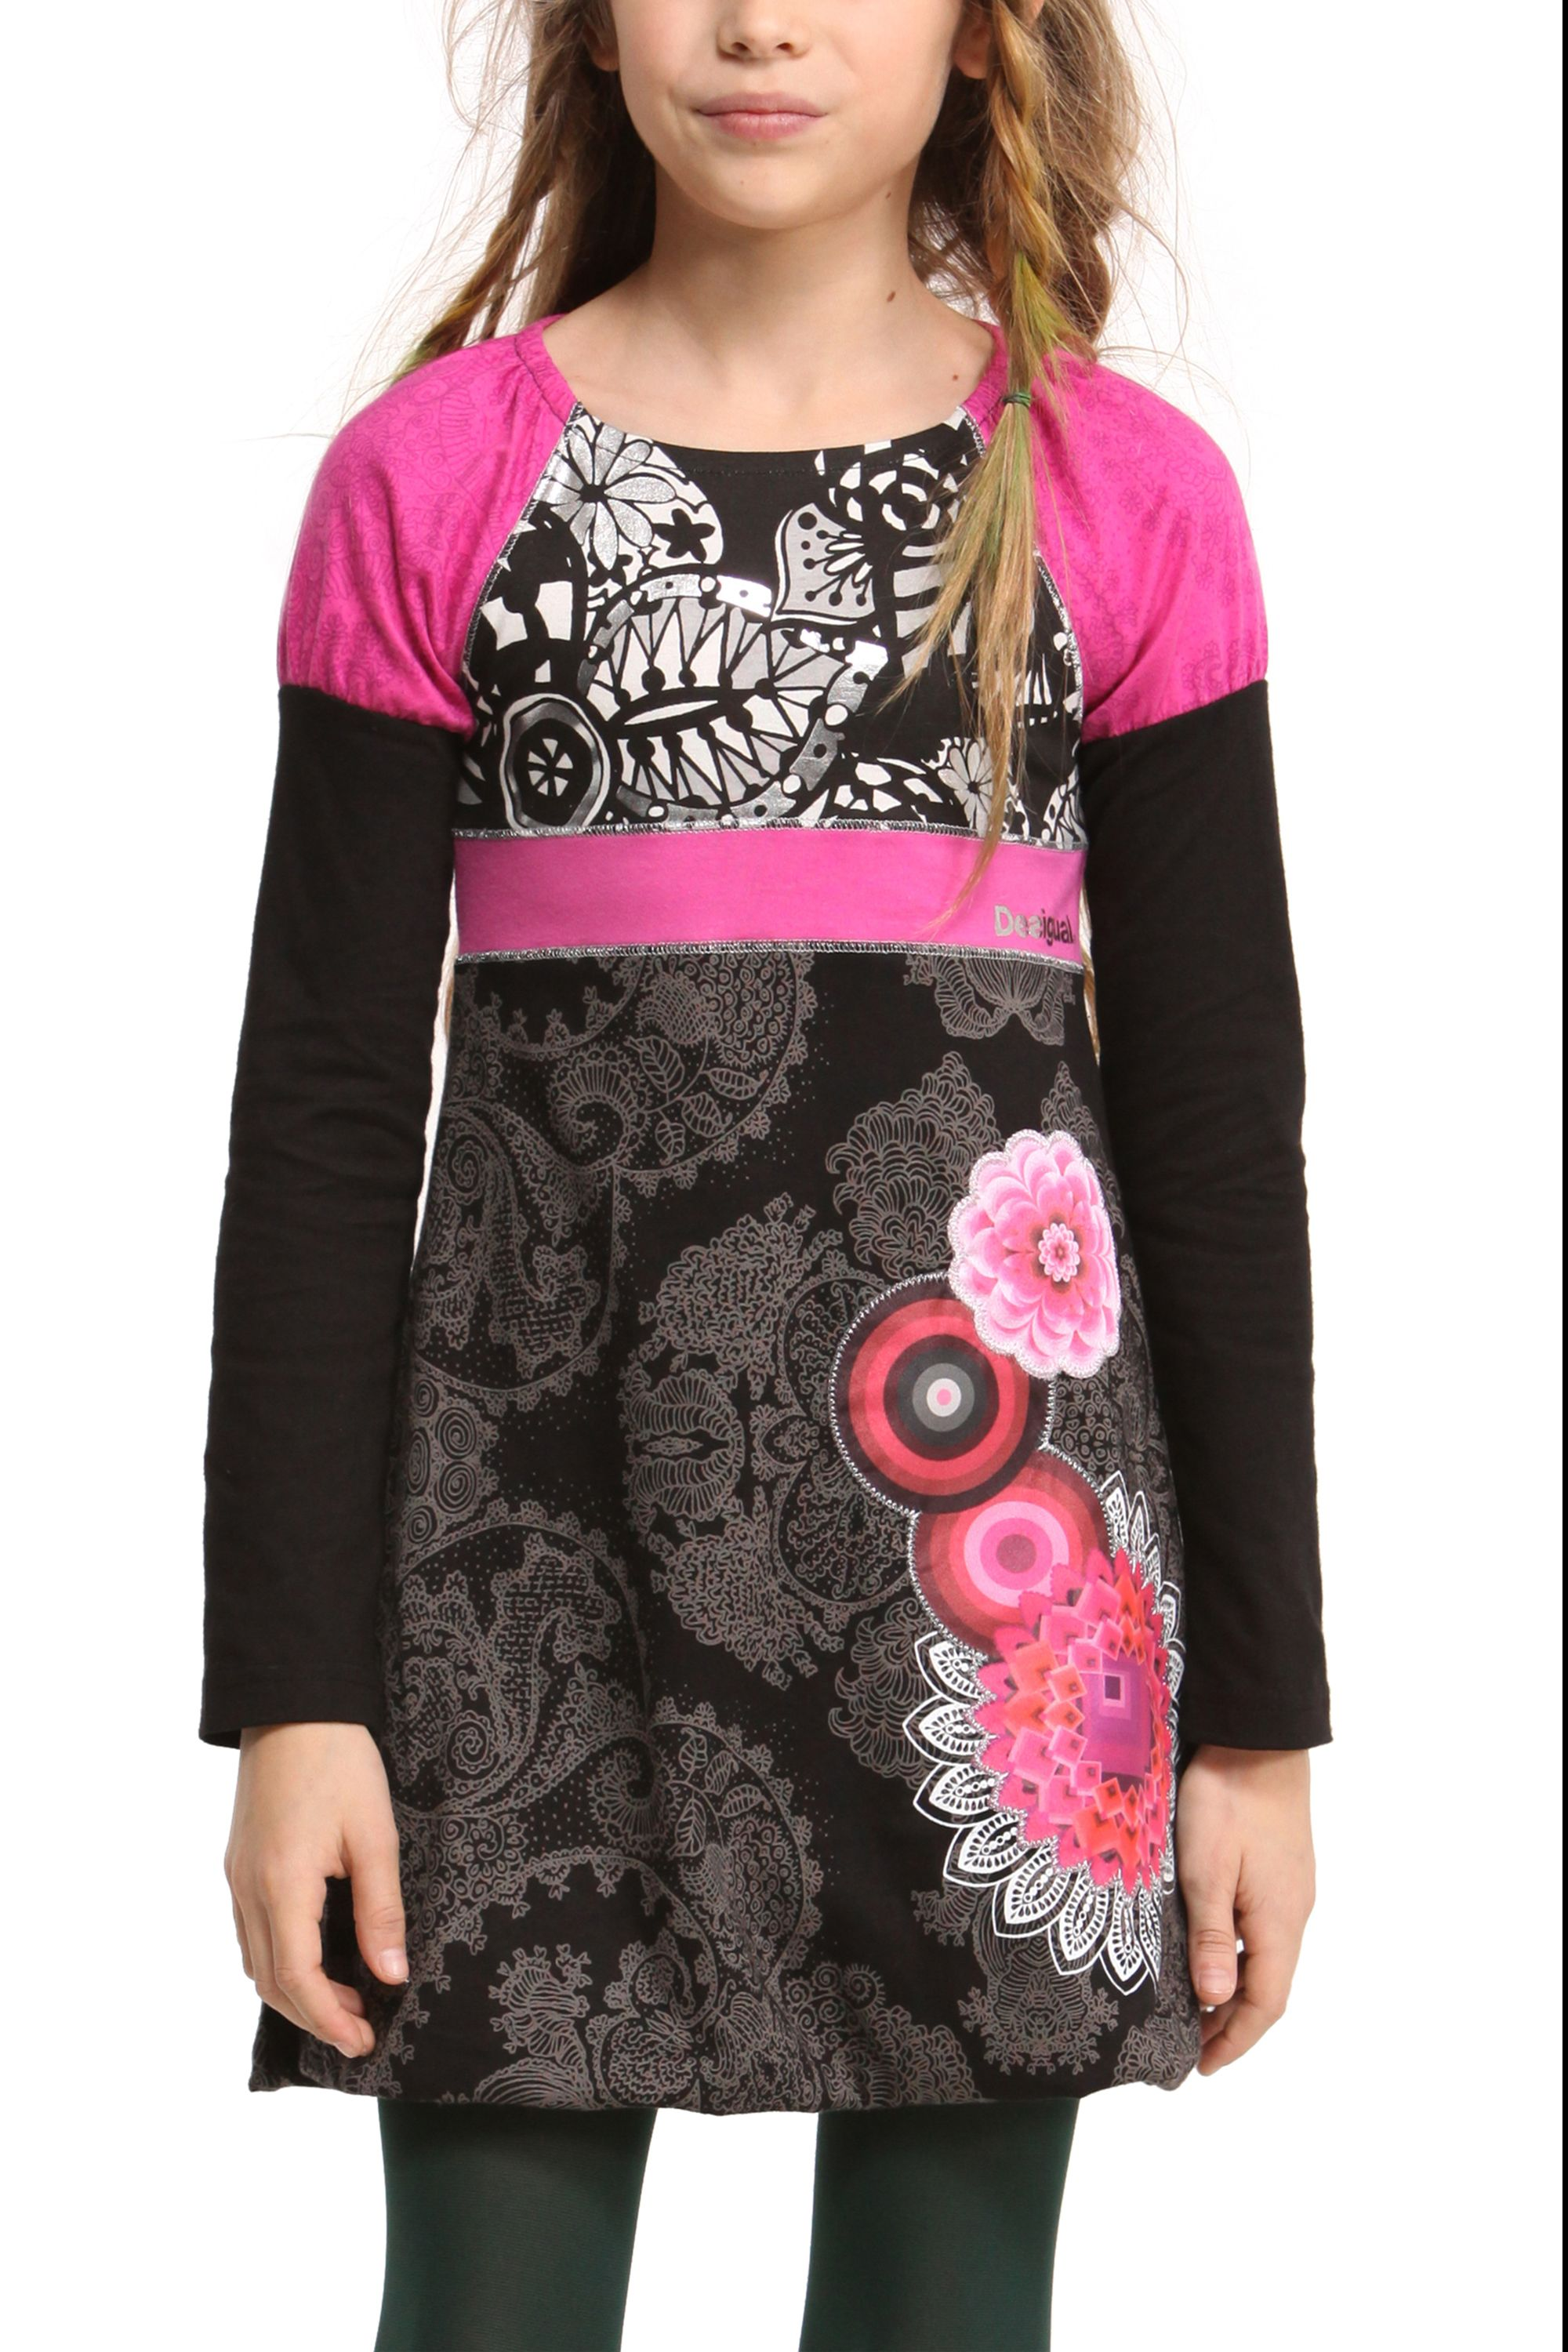 Girls hiedra dress